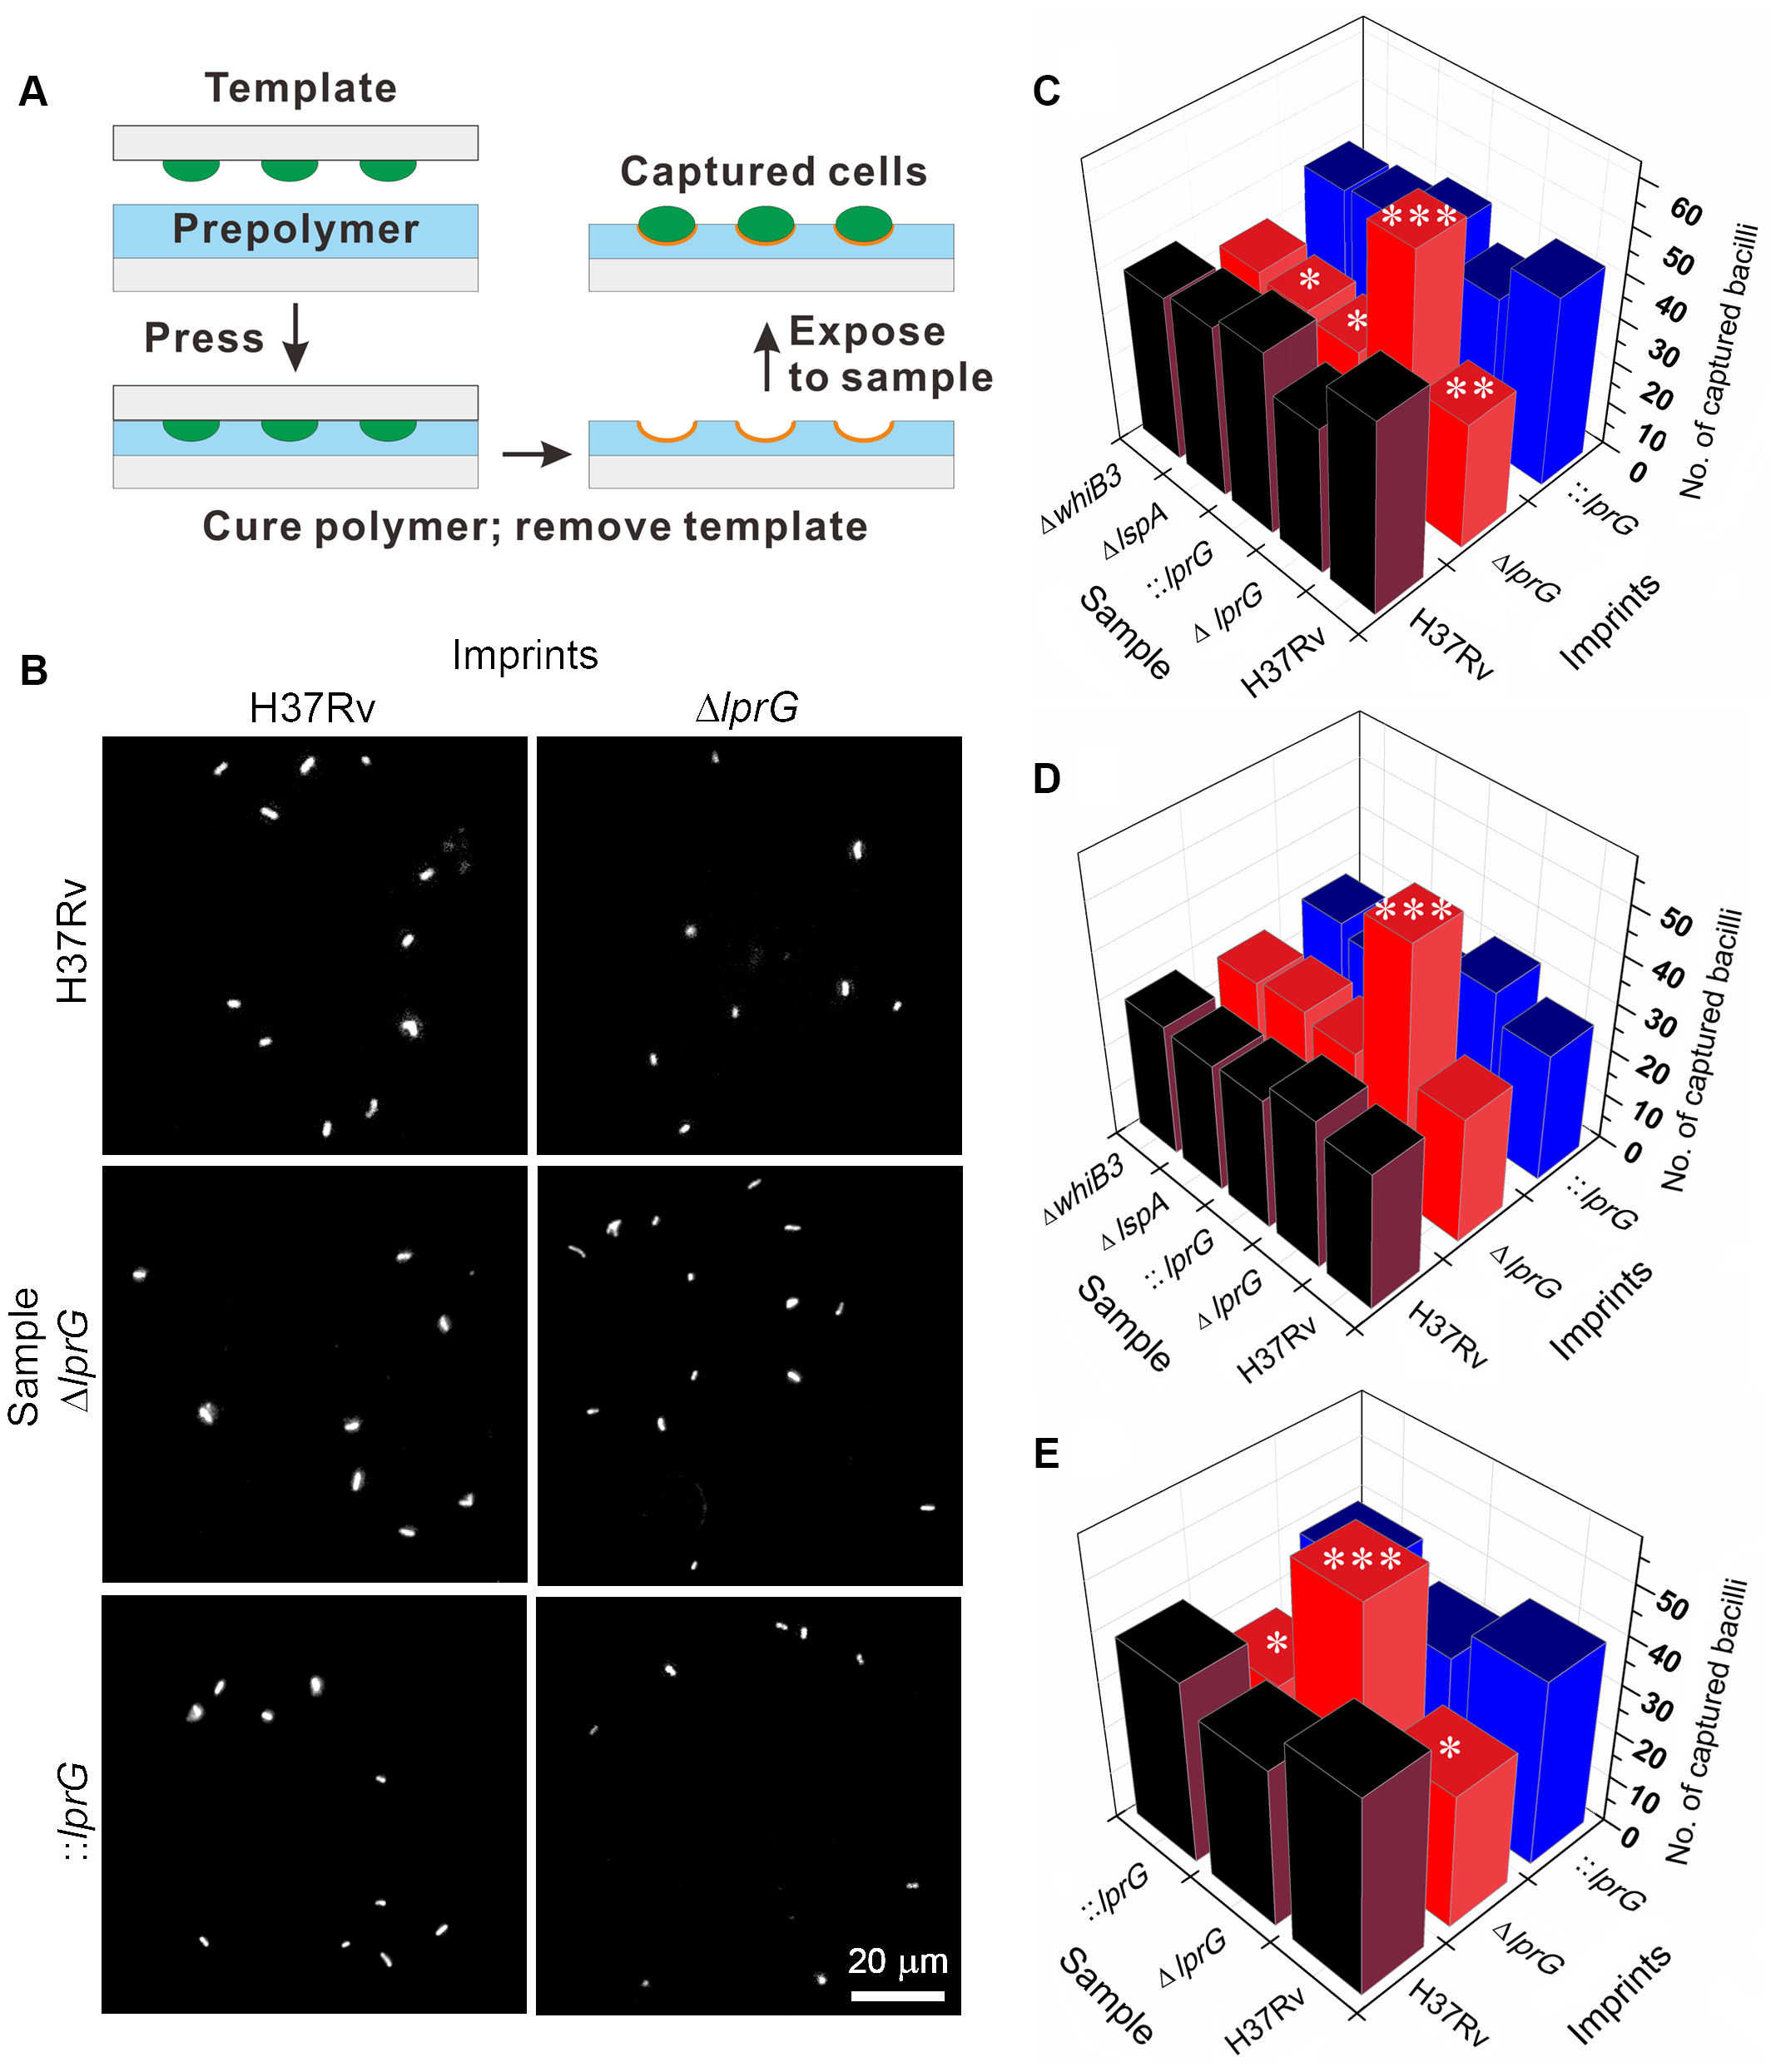 Cell-imprinting reveals altered cell surface and reduced surface-exposed LAM in the <i>lprG</i> mutant.